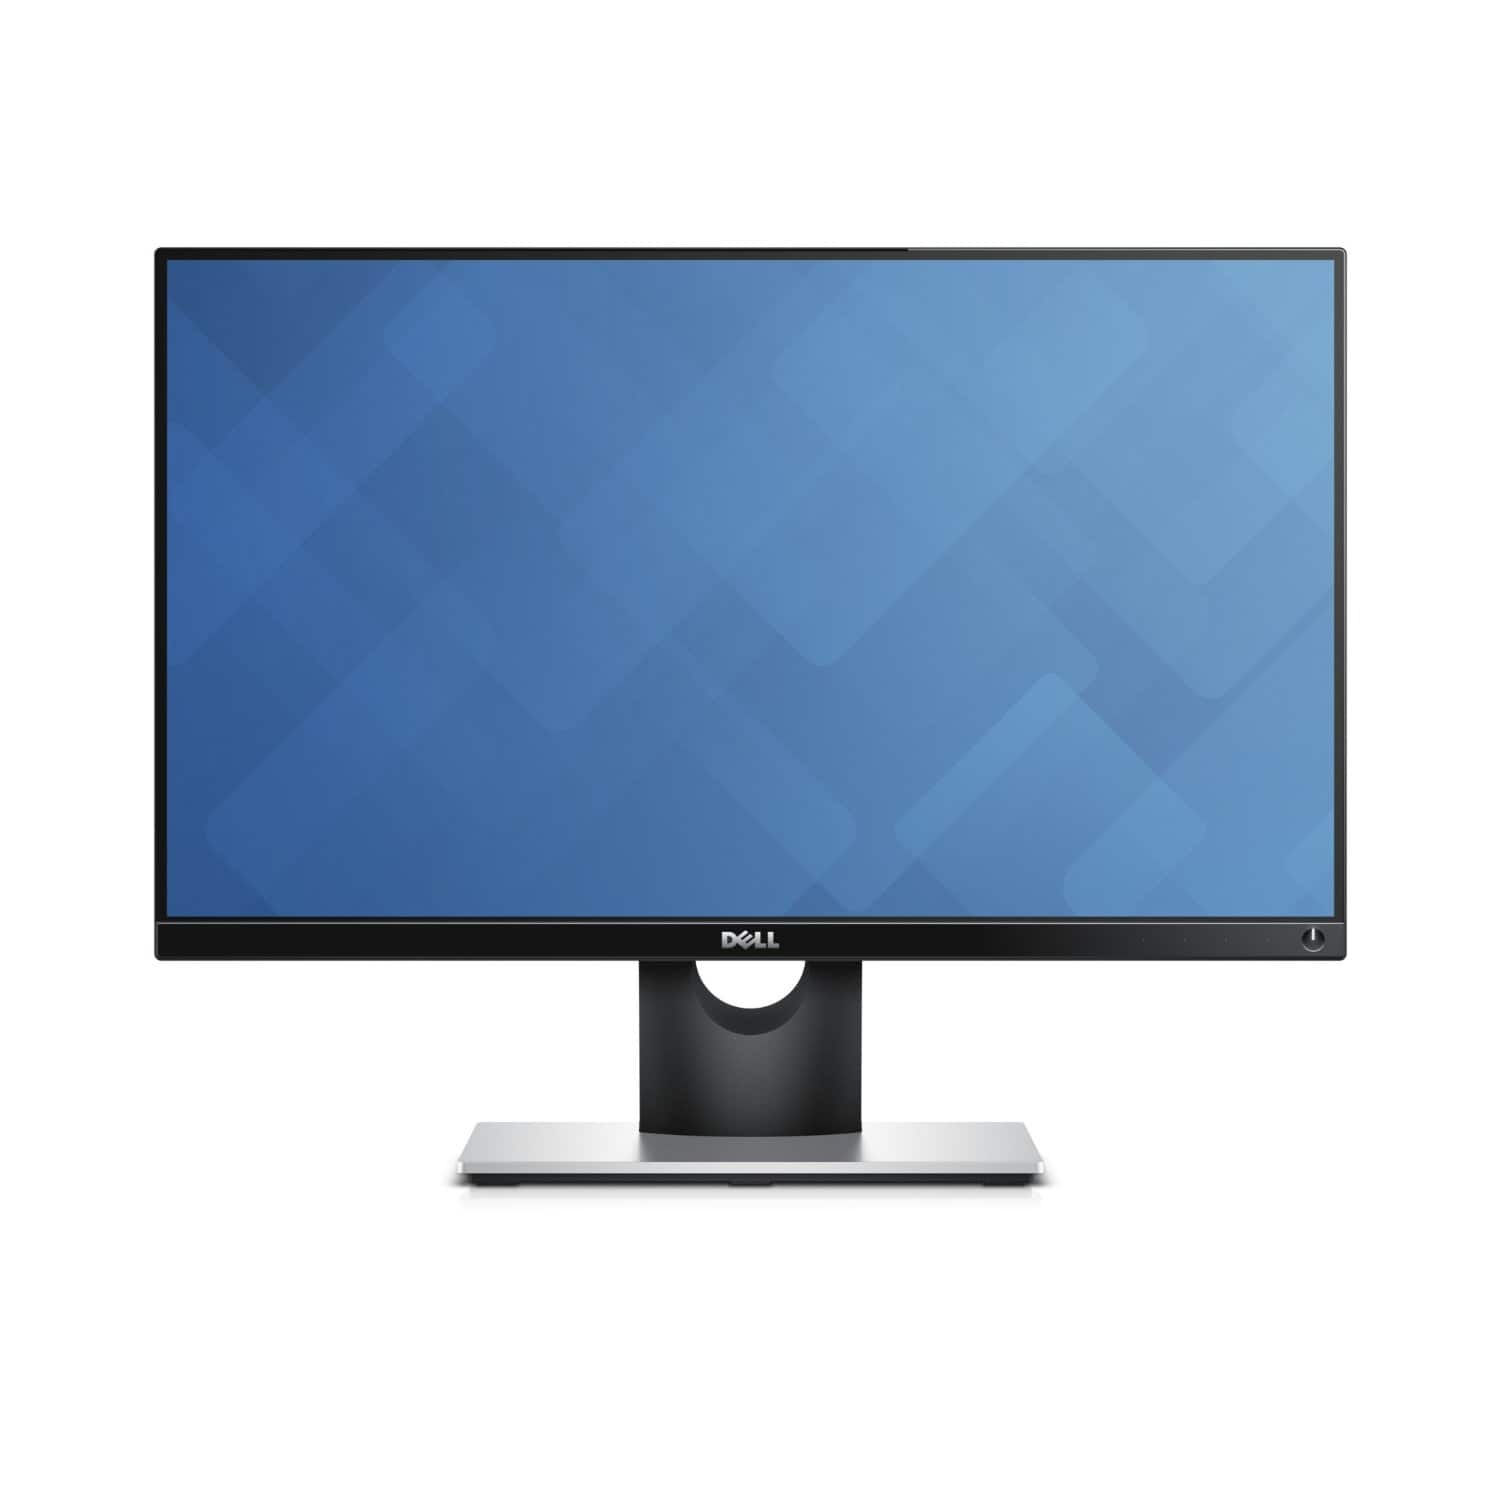 Dell 23 Monitor - S2316H $161.49 plus get a $100 dell gift card